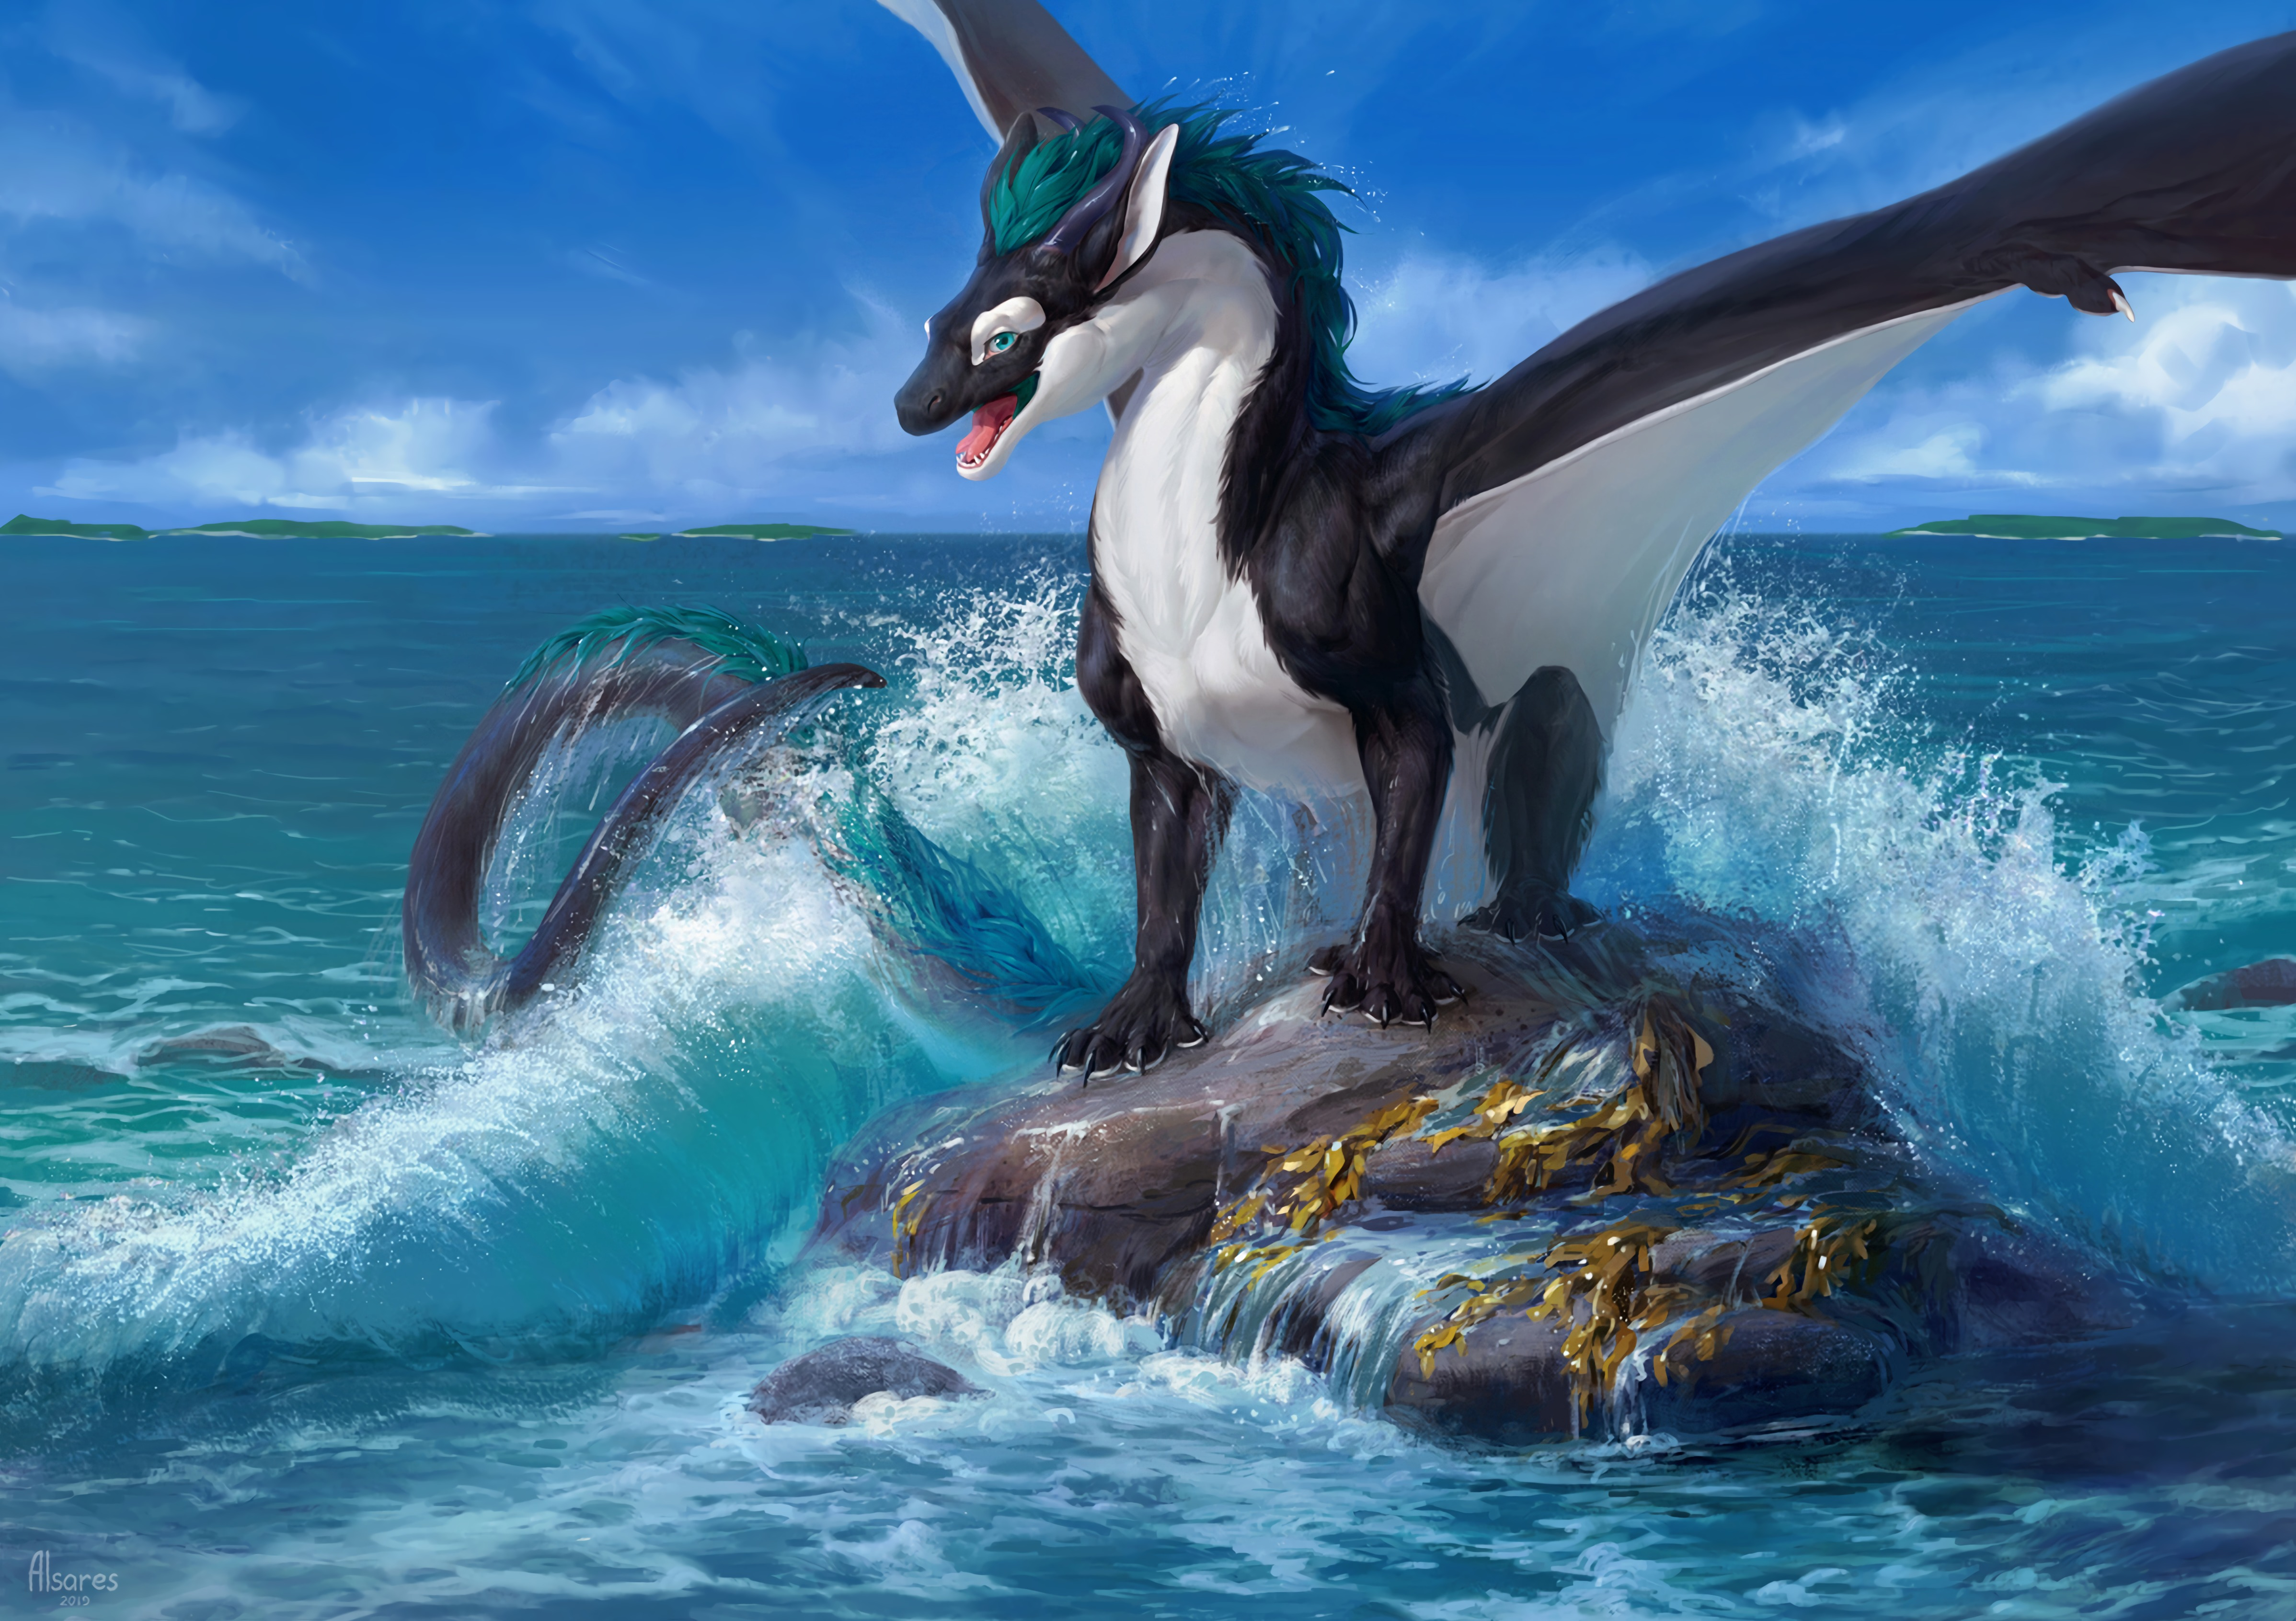 81571 download wallpaper Dragon, Sea, Rock, Wave, Art screensavers and pictures for free